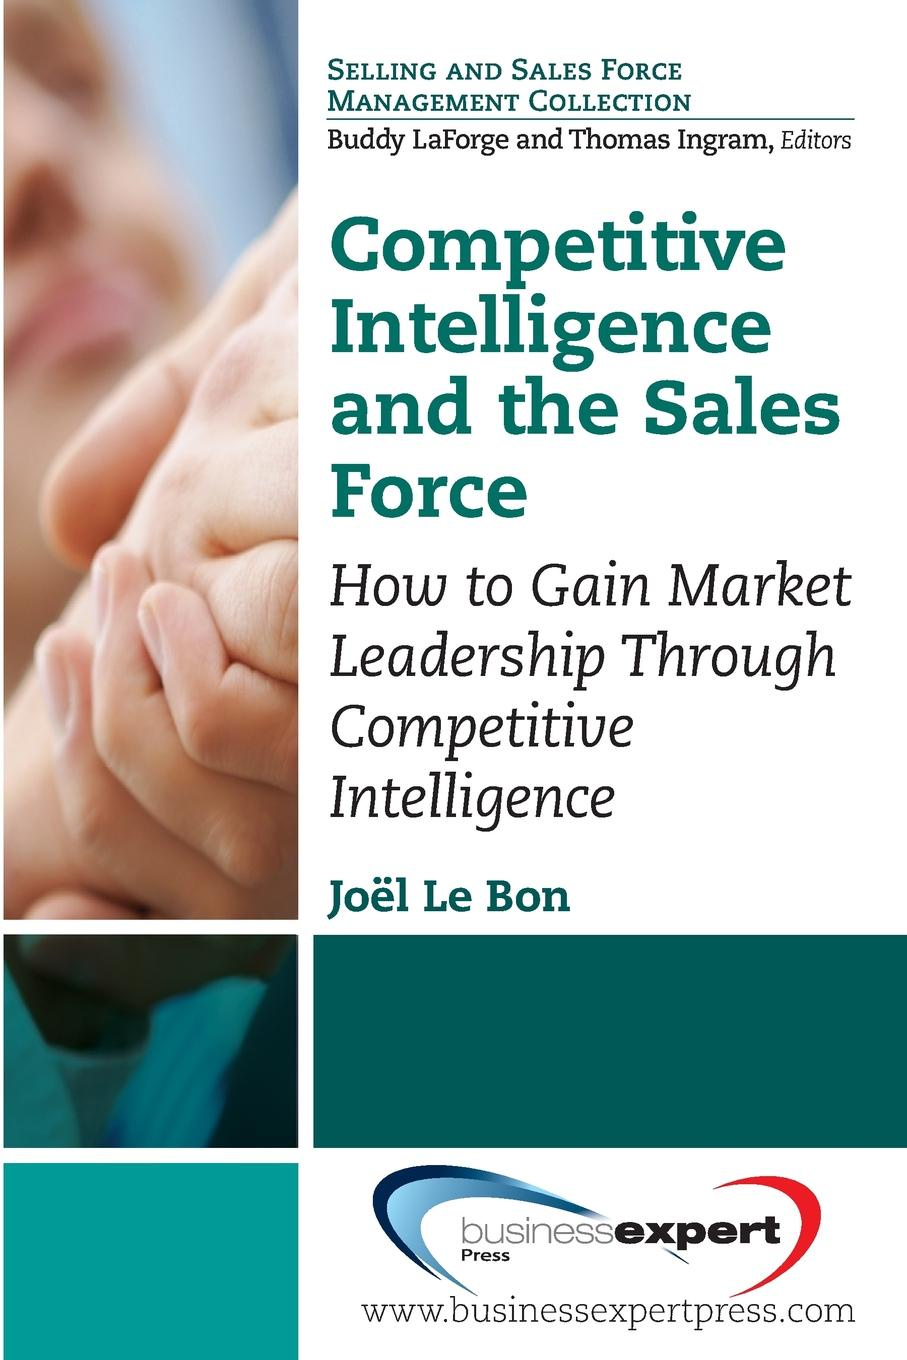 Joel Le Bon Competitive Intelligence and the Sales Force. How to Gain Market Leadership Through Competitive Intelligence steve saccone relational intelligence how leaders can expand their influence through a new way of being smart